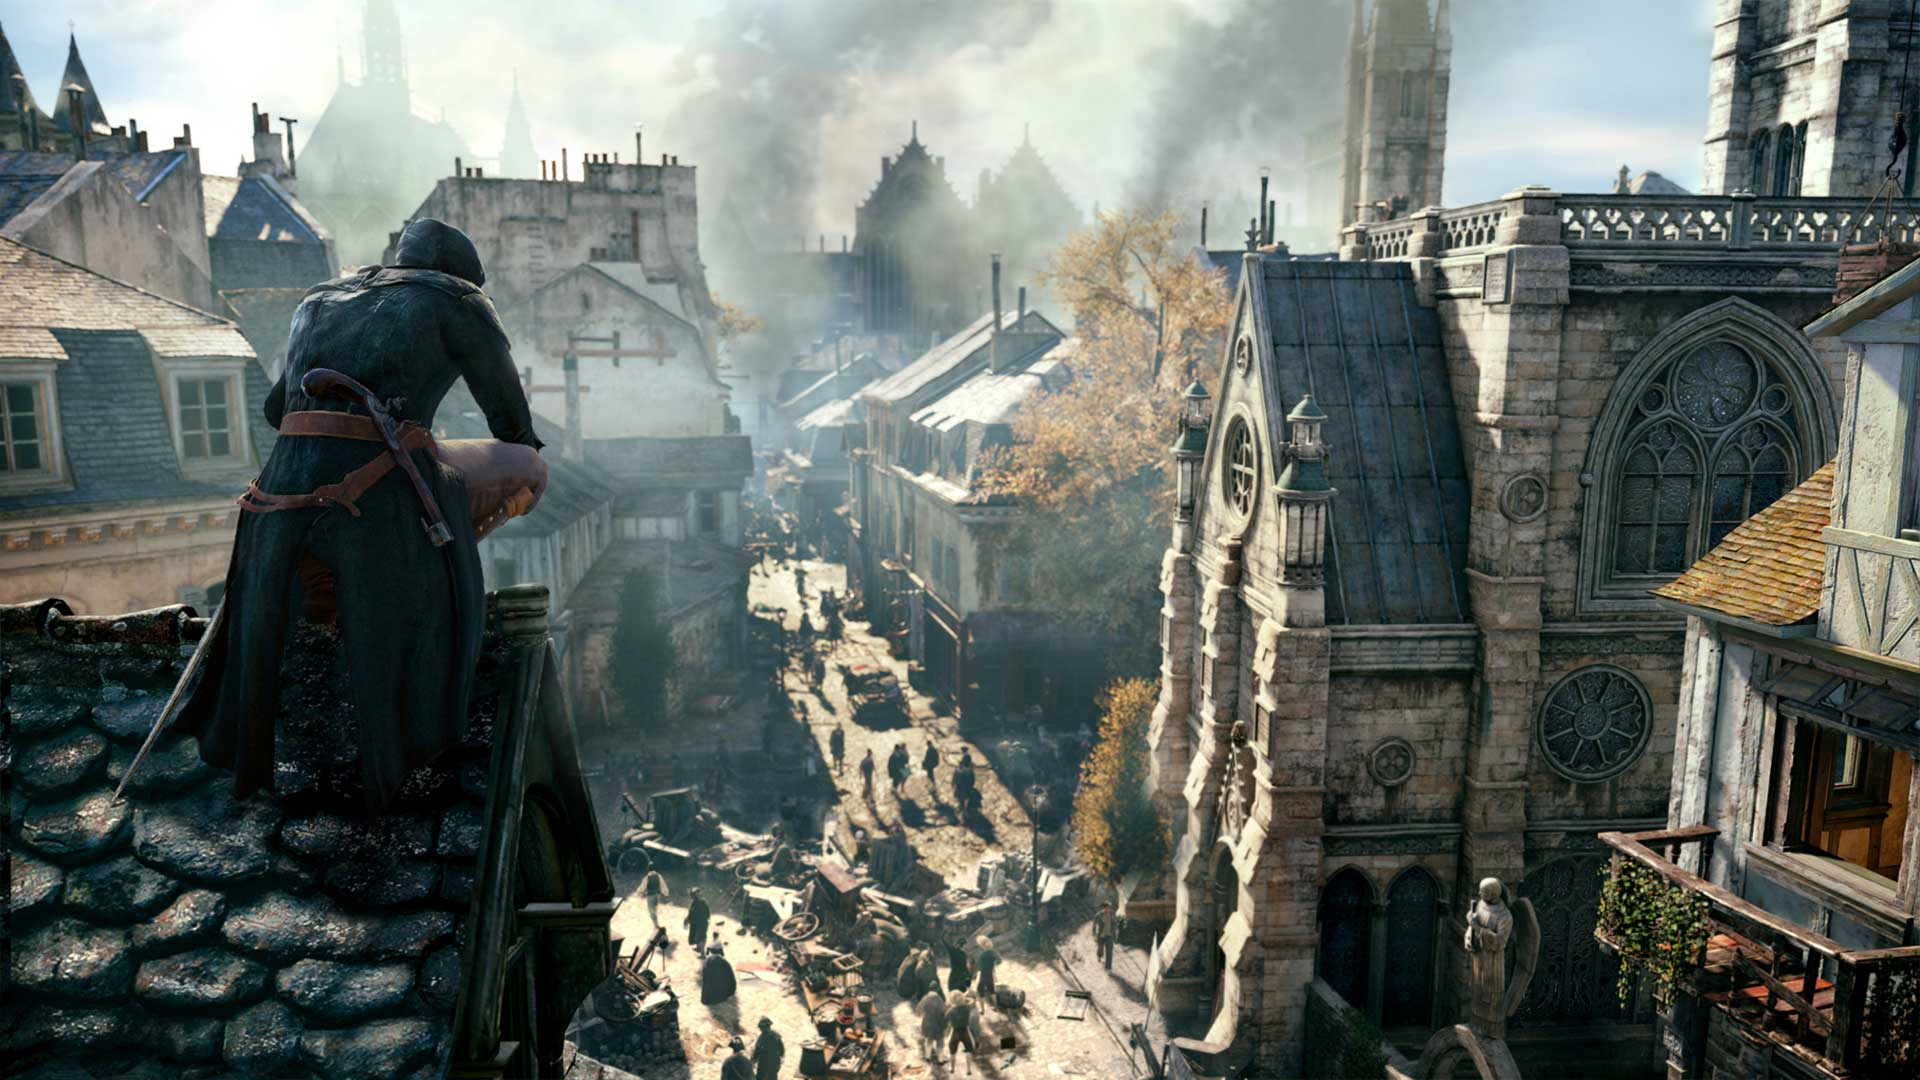 Assassins Creed Unity for the PC Benchmarks and analysis of its 1920x1080